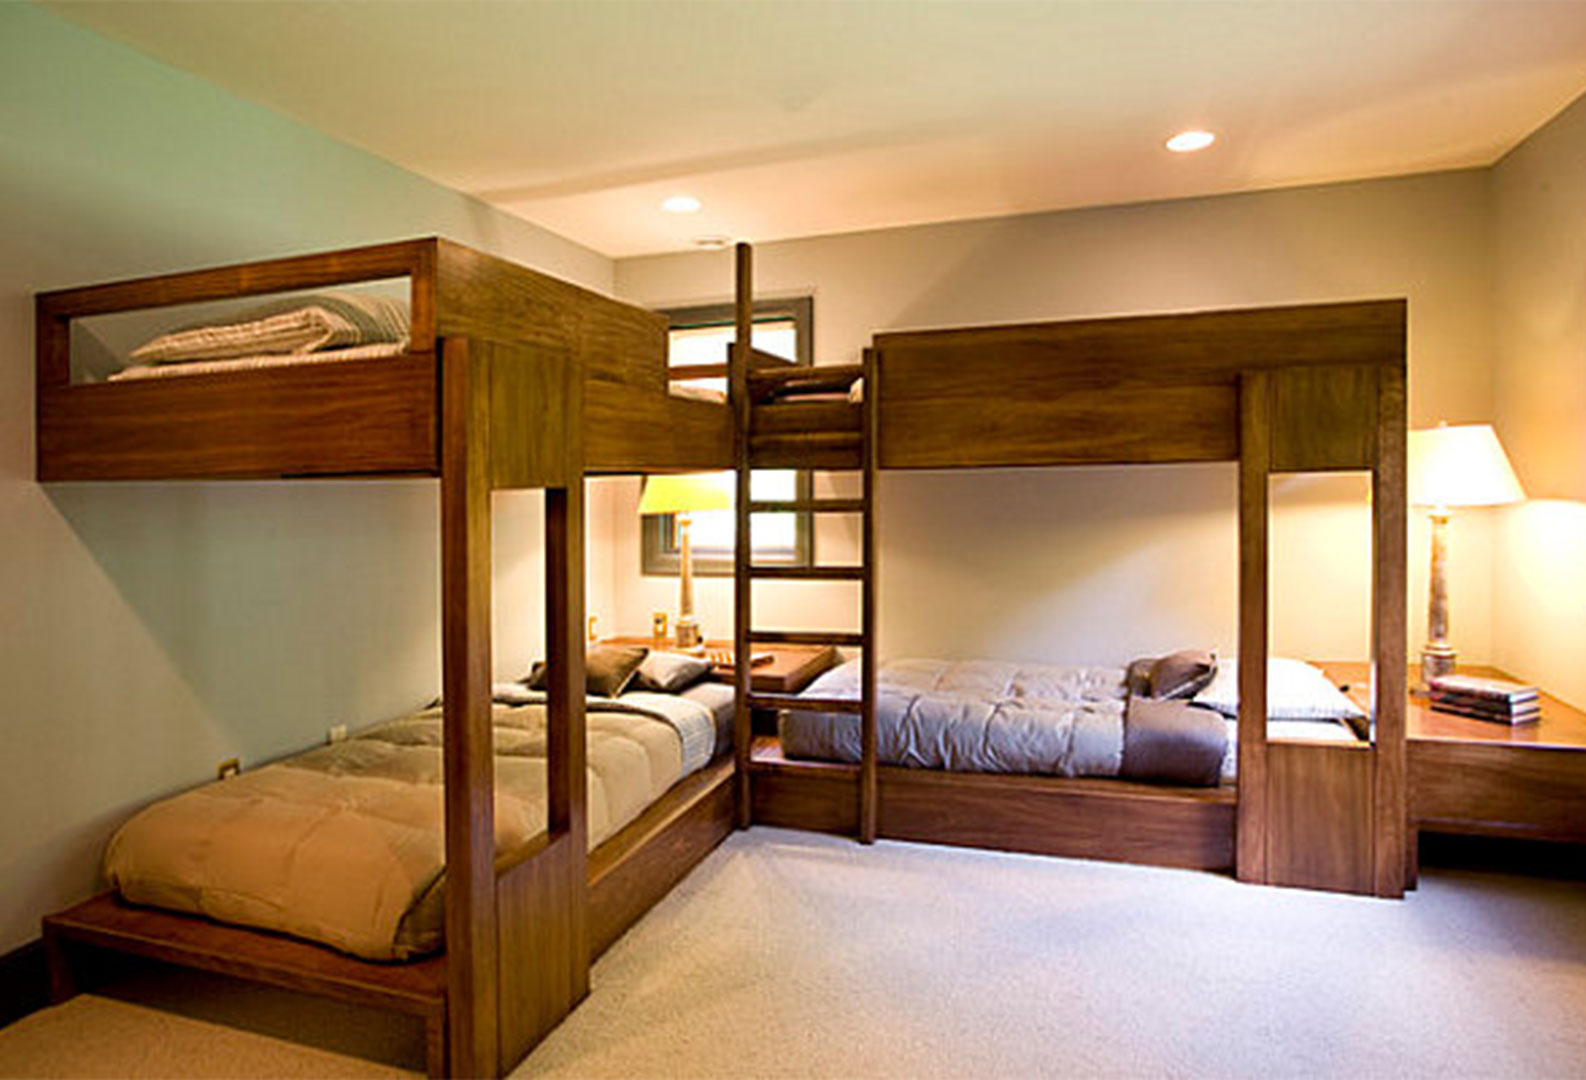 L Shaped Bunk Beds For Adults Zemsib